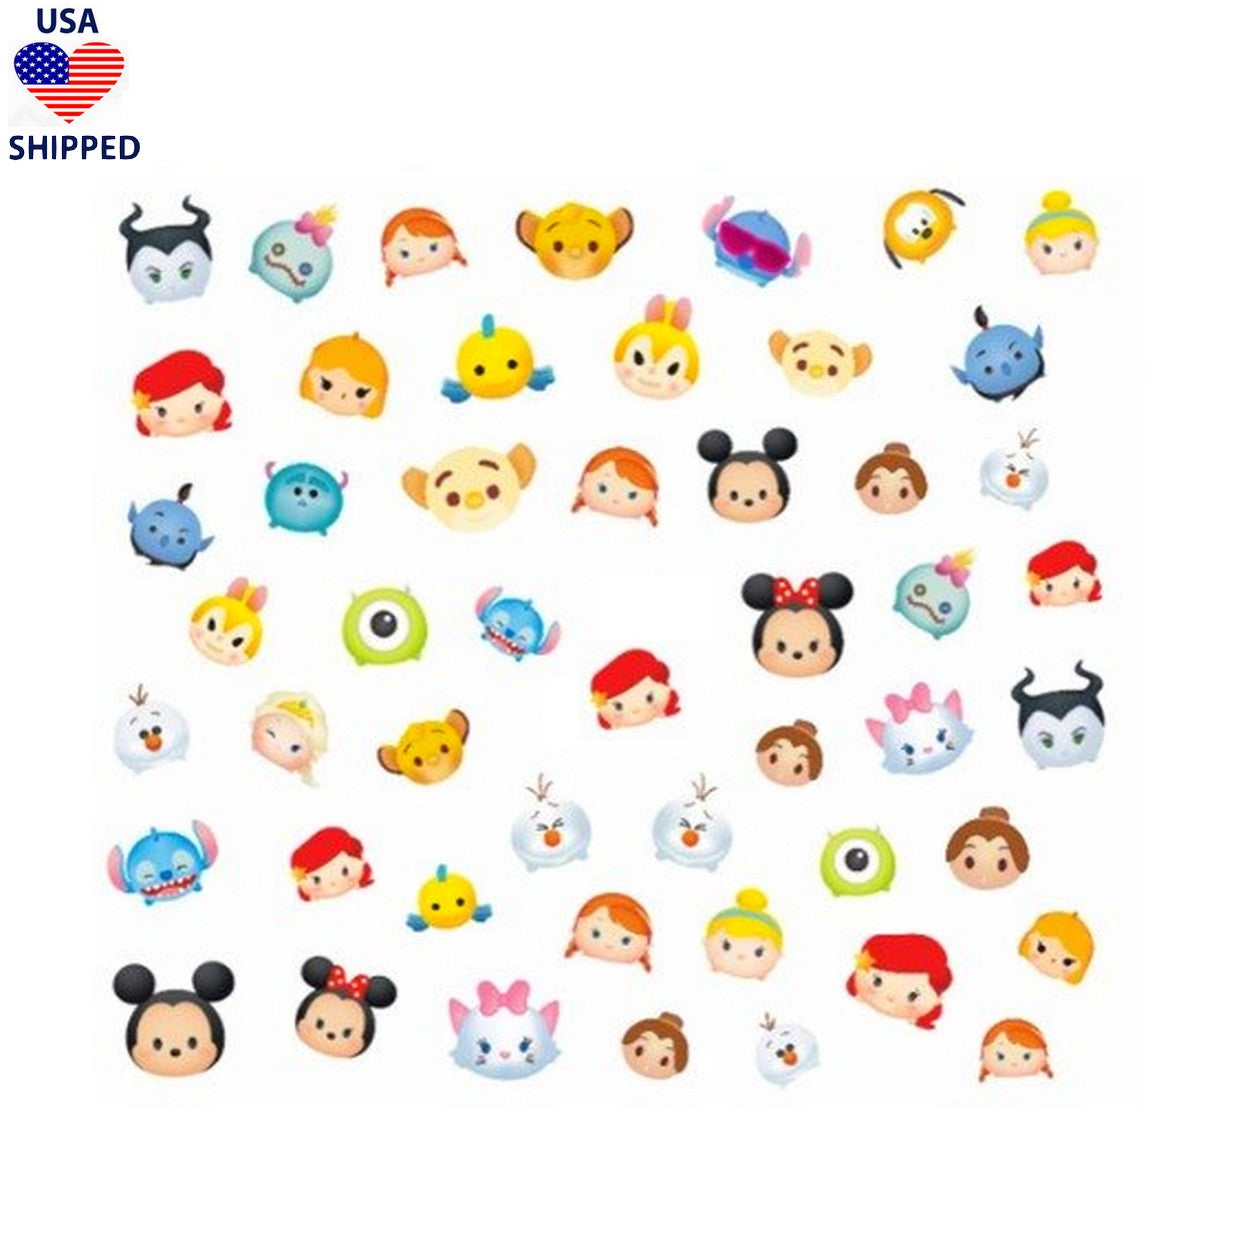 (USA) Cartoons Characters Mix Nail Stickers